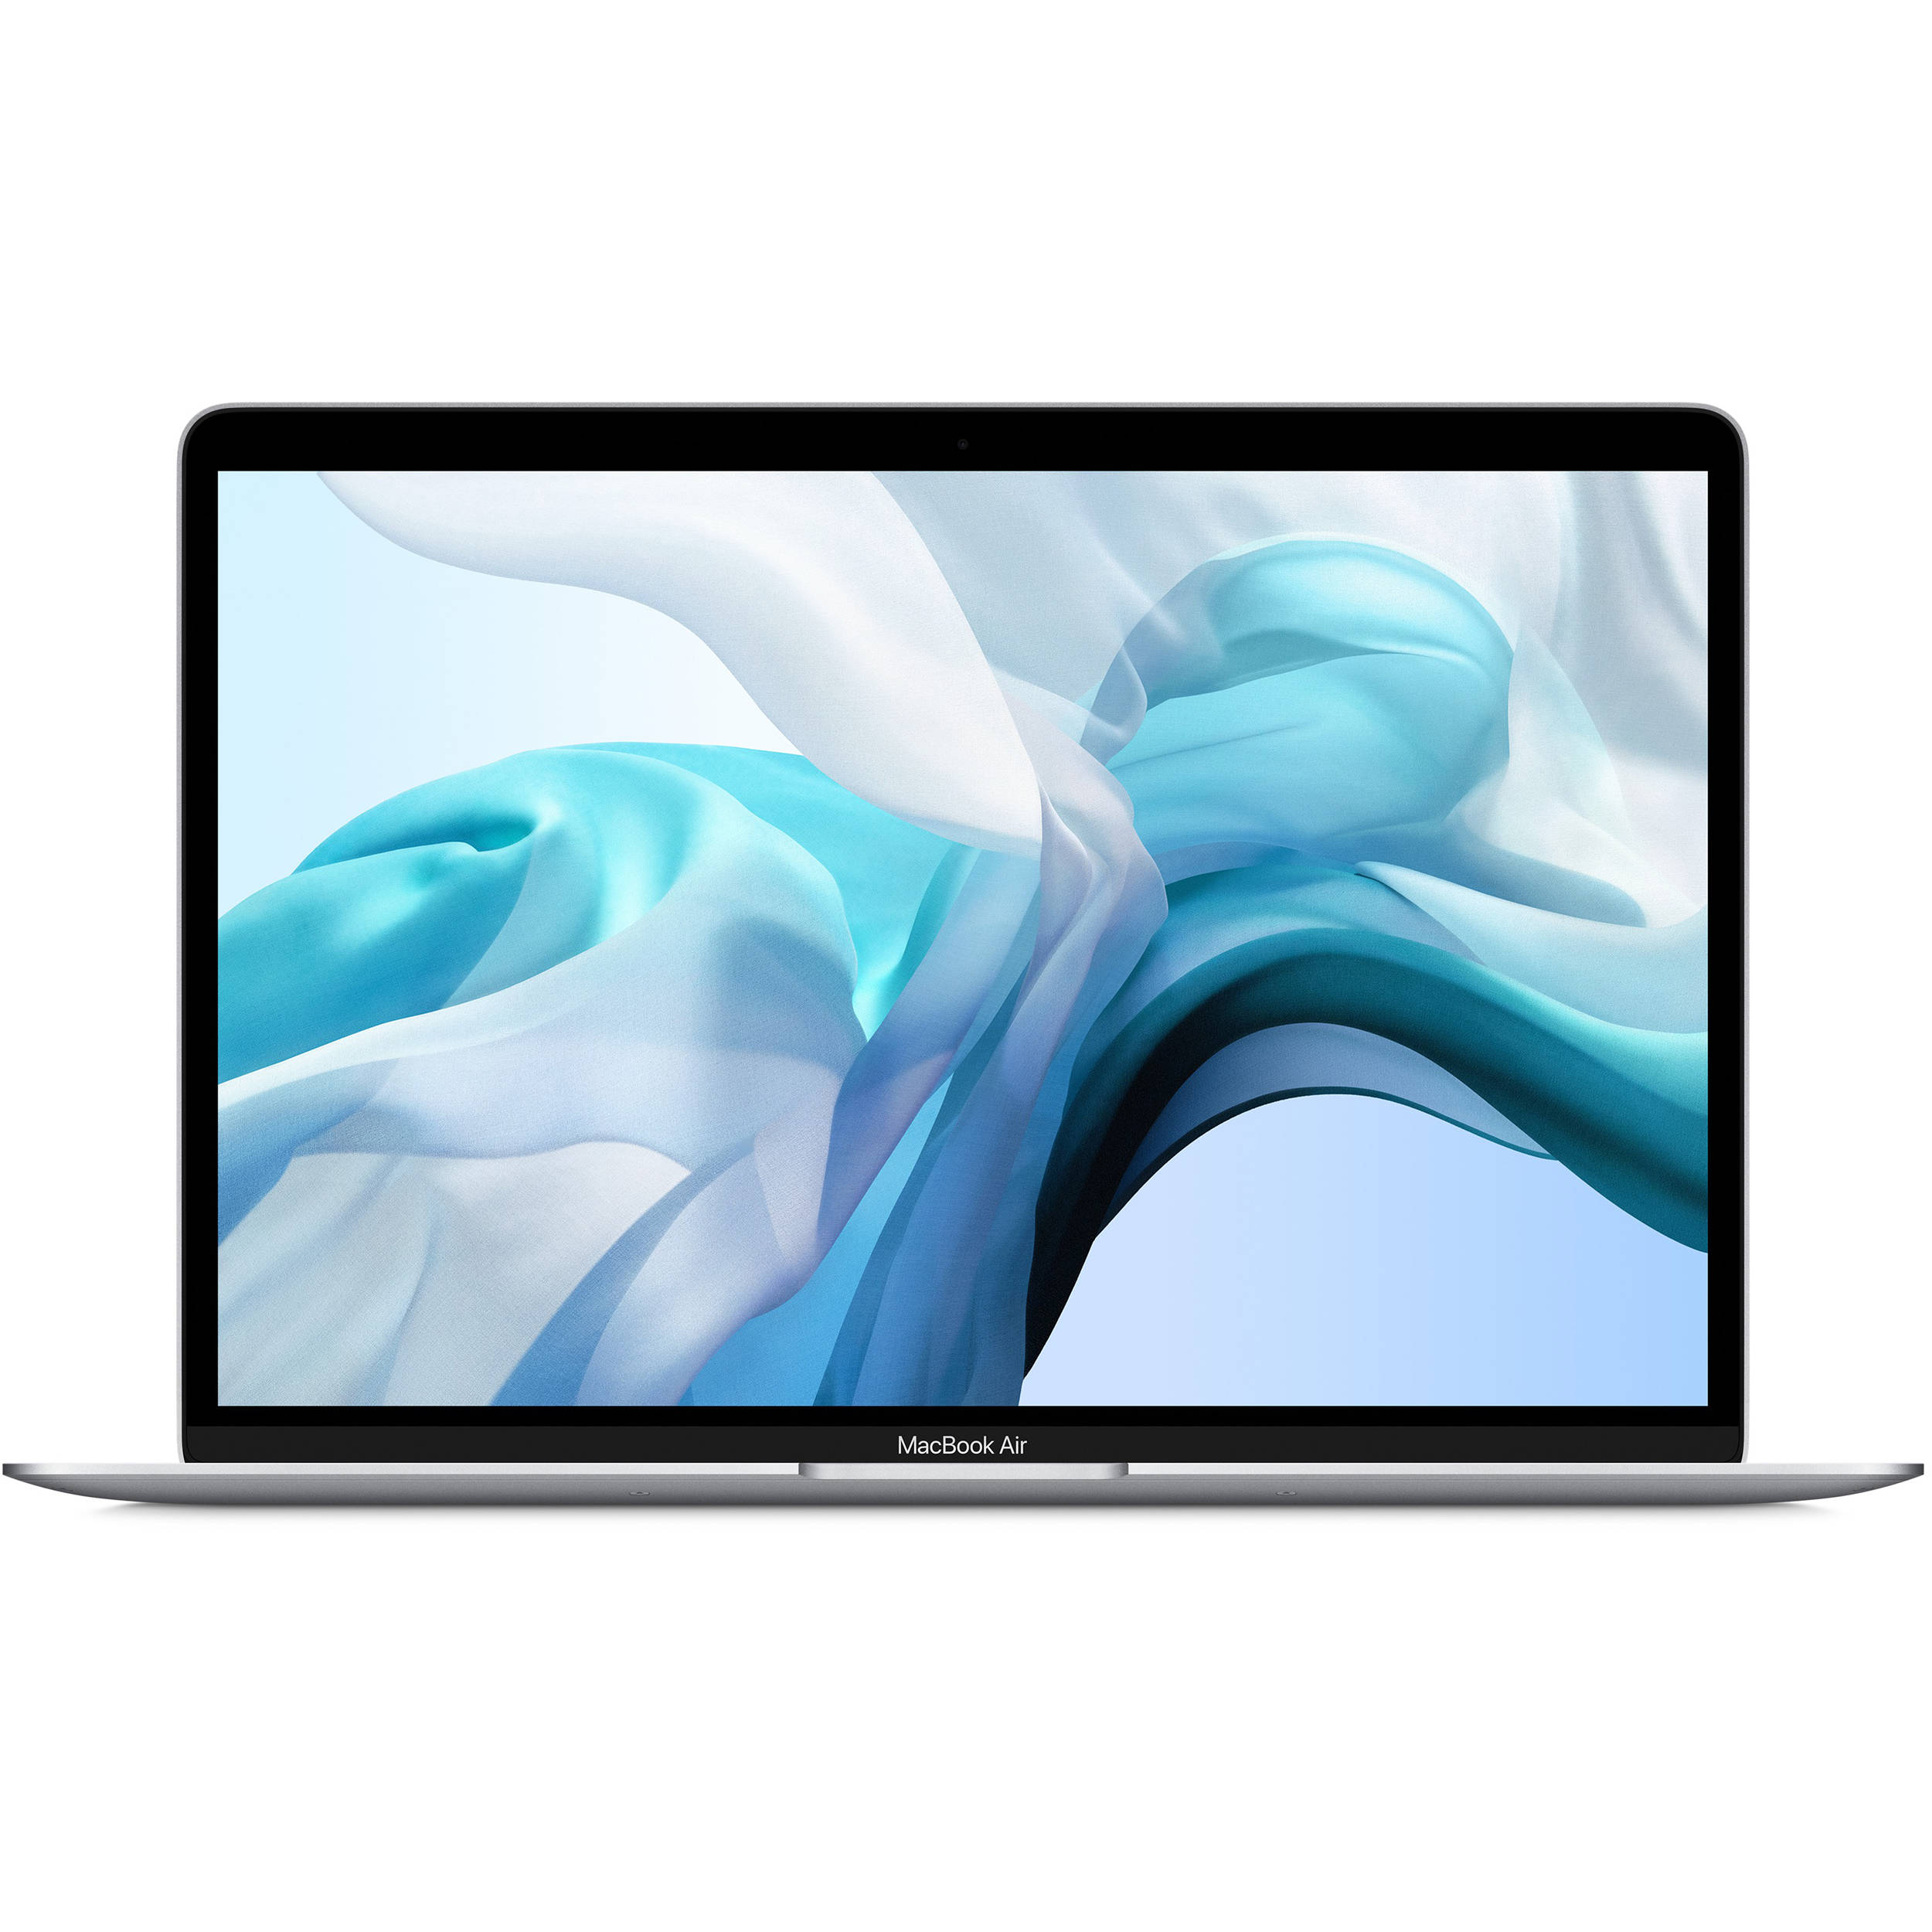 Image of Apple MacBook Air (2020) 13-inch Intel Core i5 8GB 512GB H42 - Silver (US Keyboard)